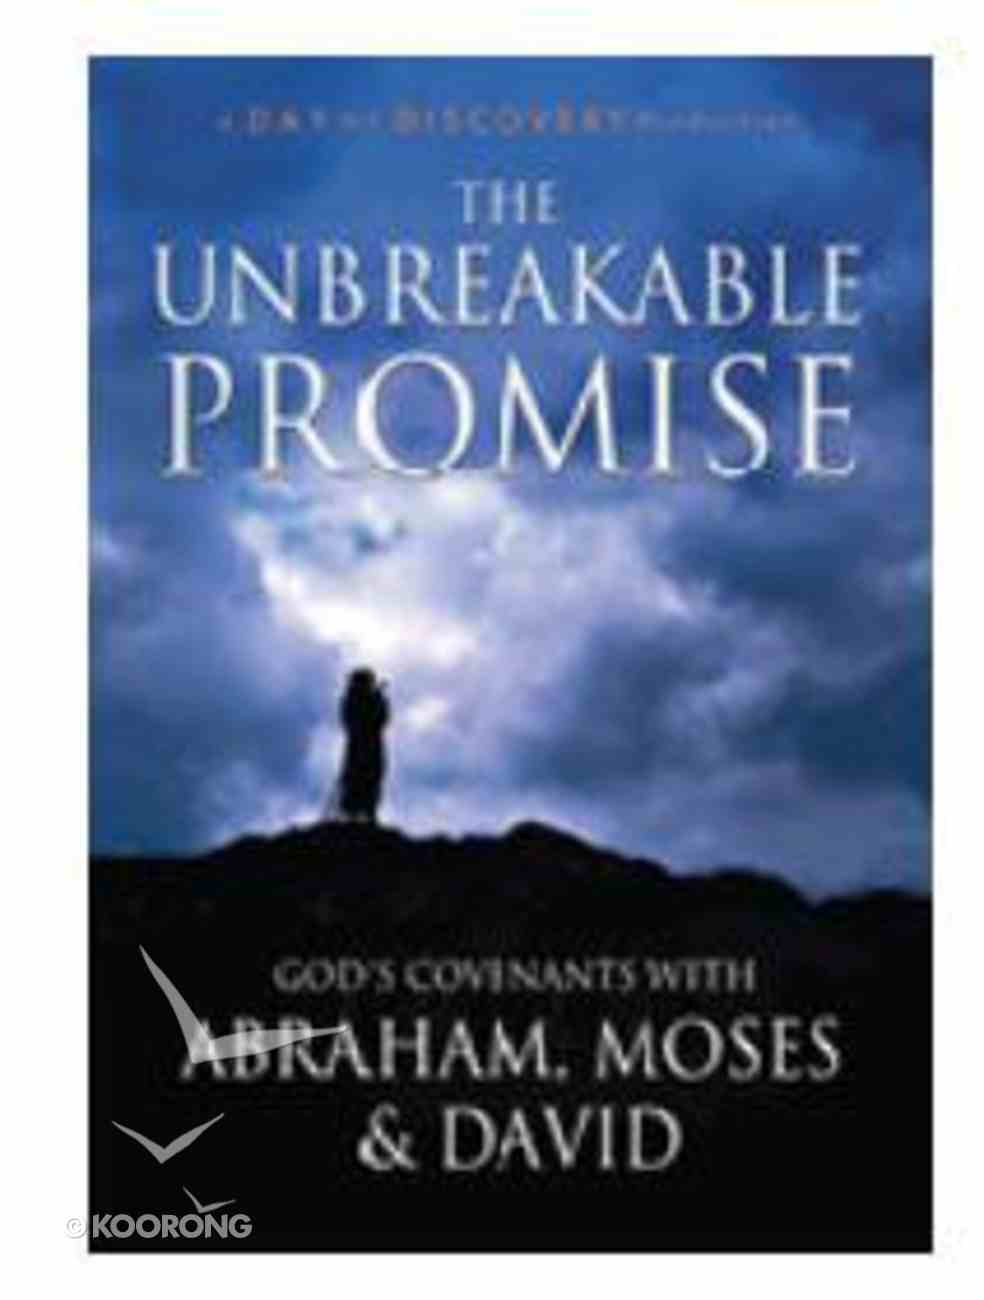 The Unbreakable Promise DVD